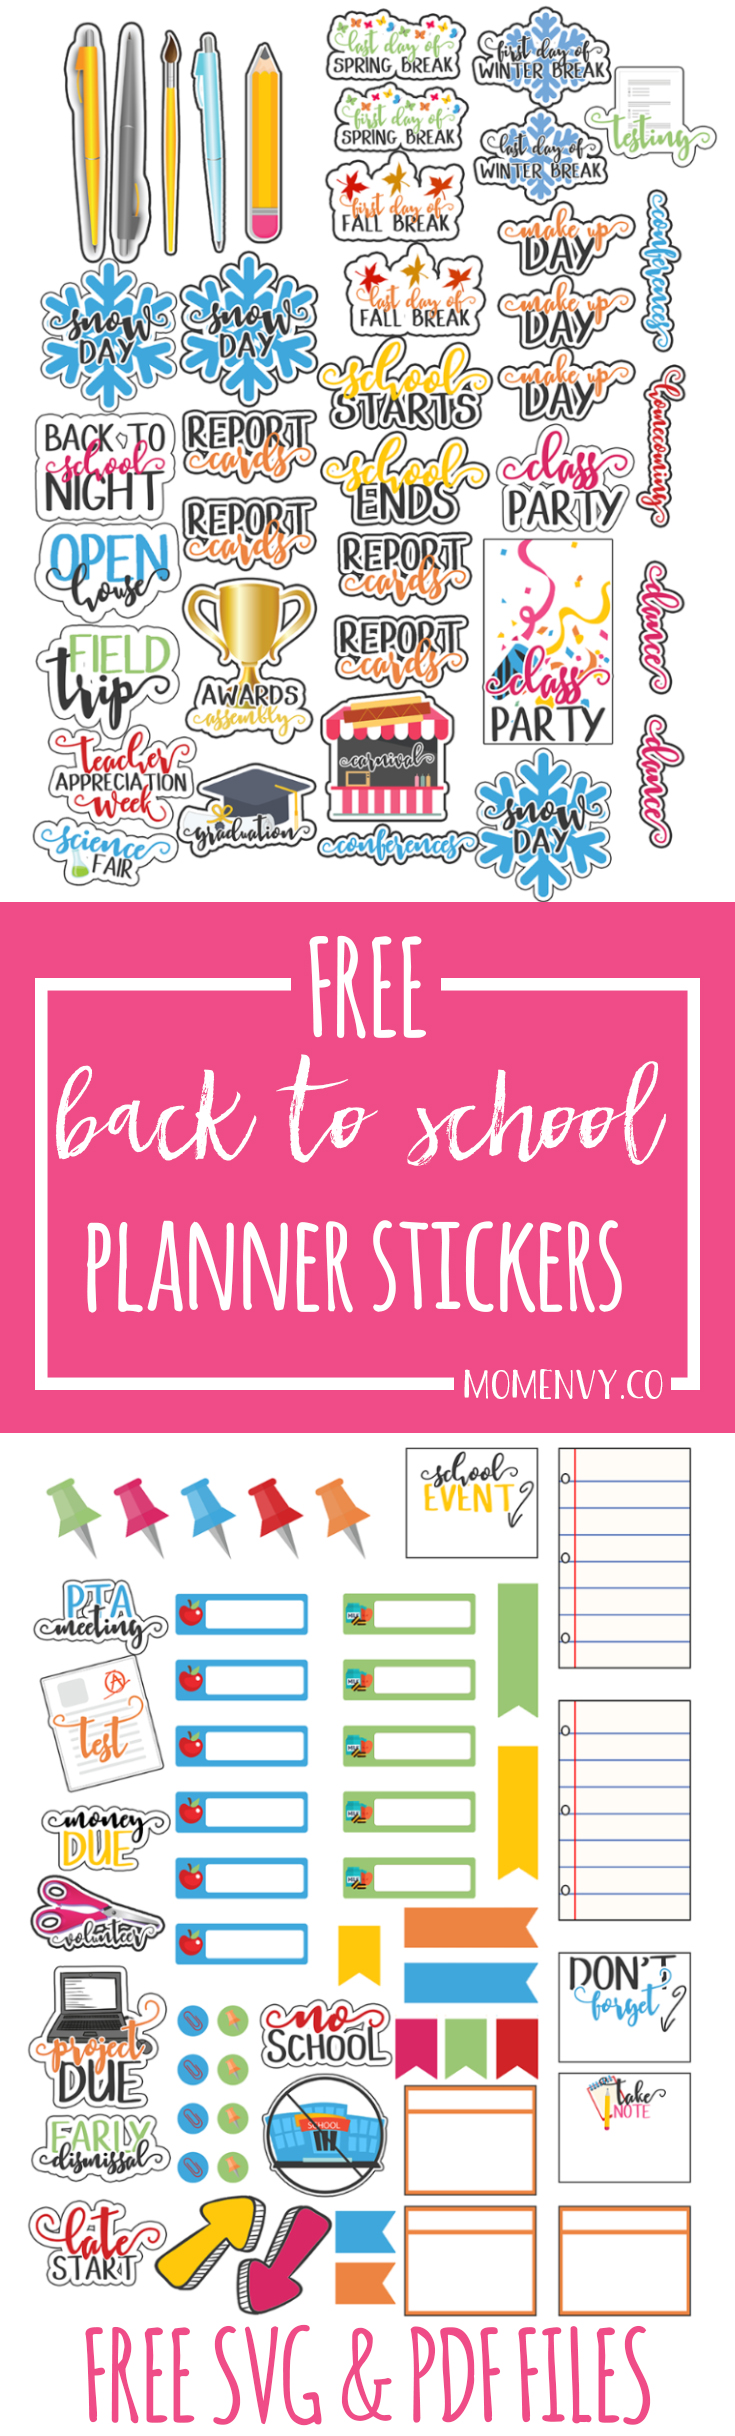 Kids Calendar With Activity Stickers : Back to school planner stickers perfect for calendars too